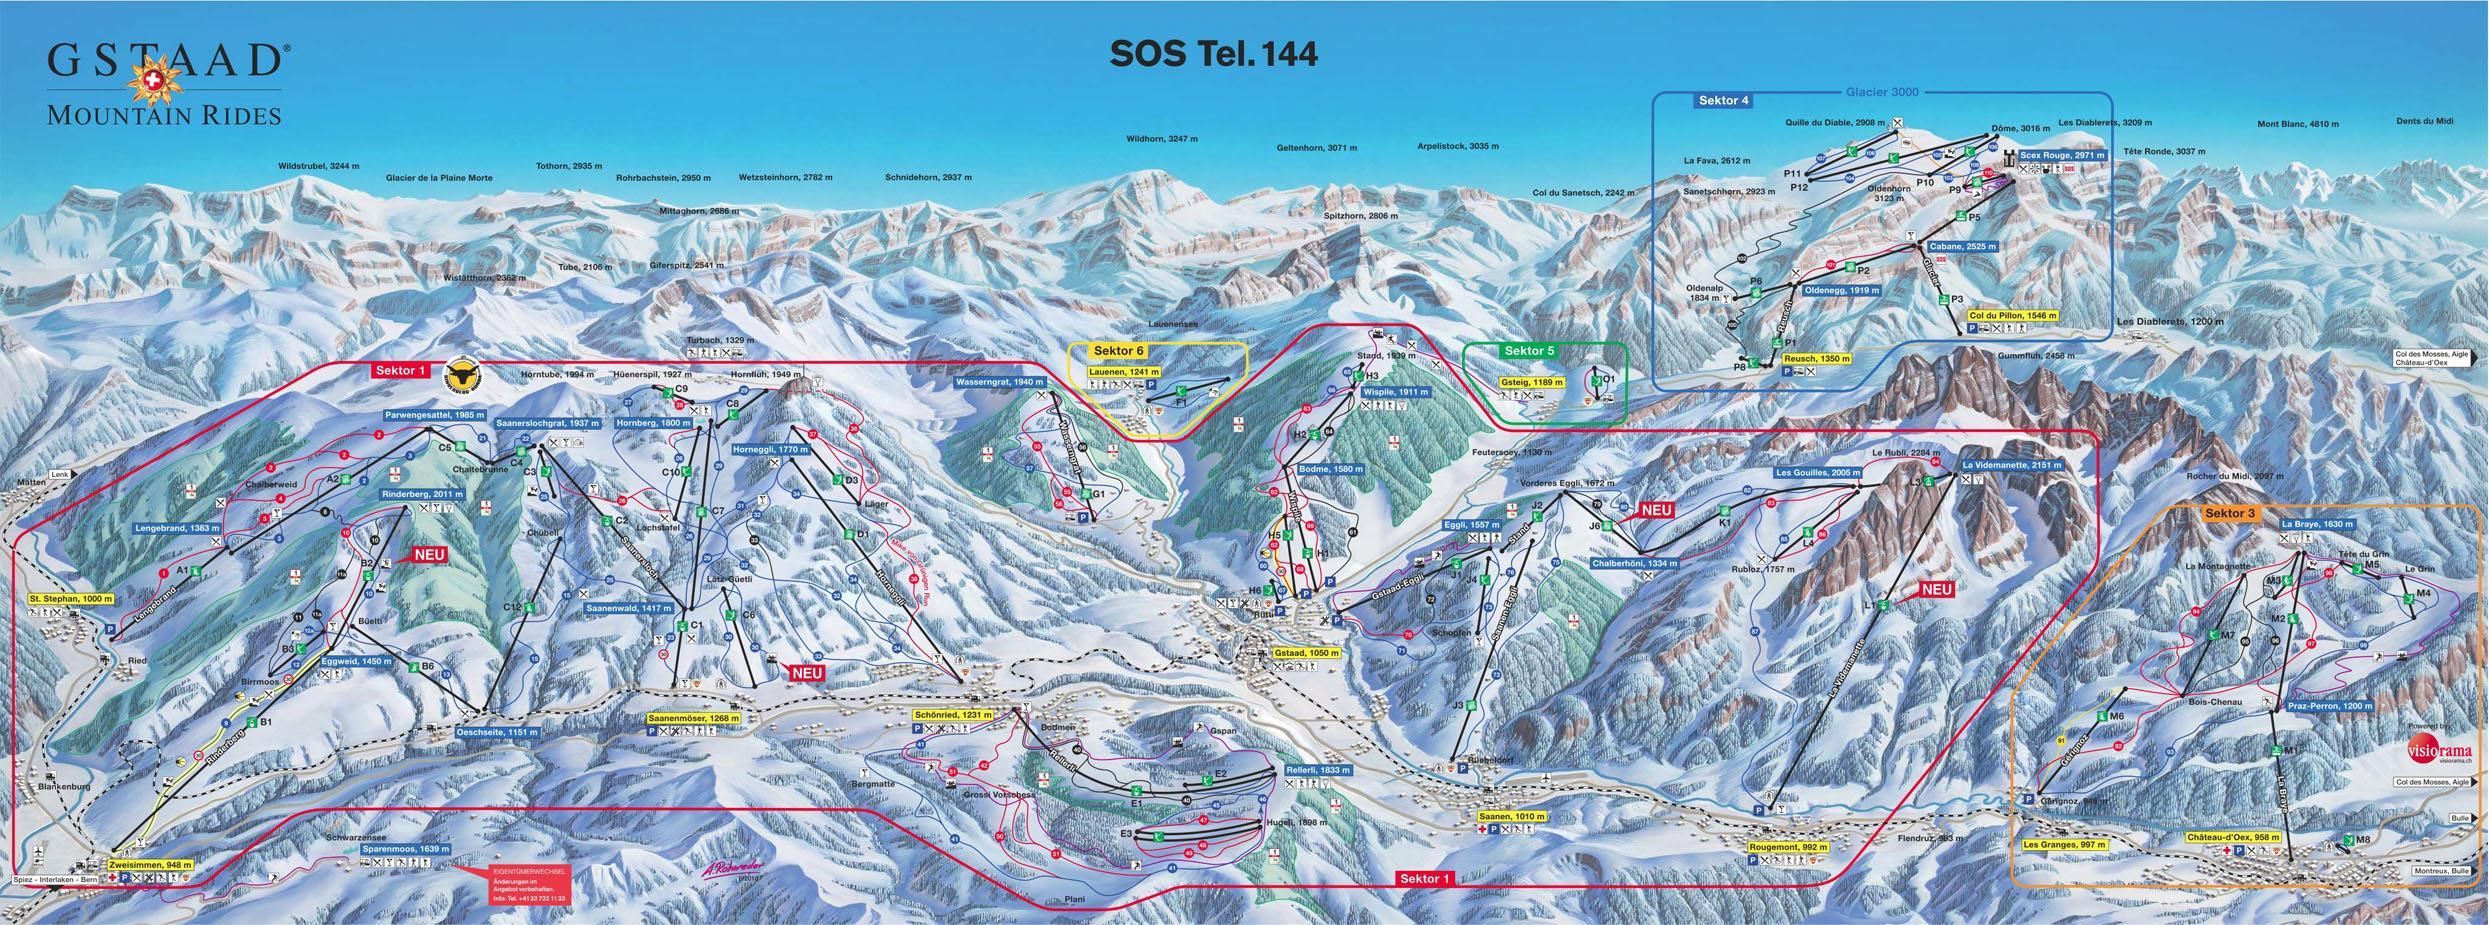 gstaad_map